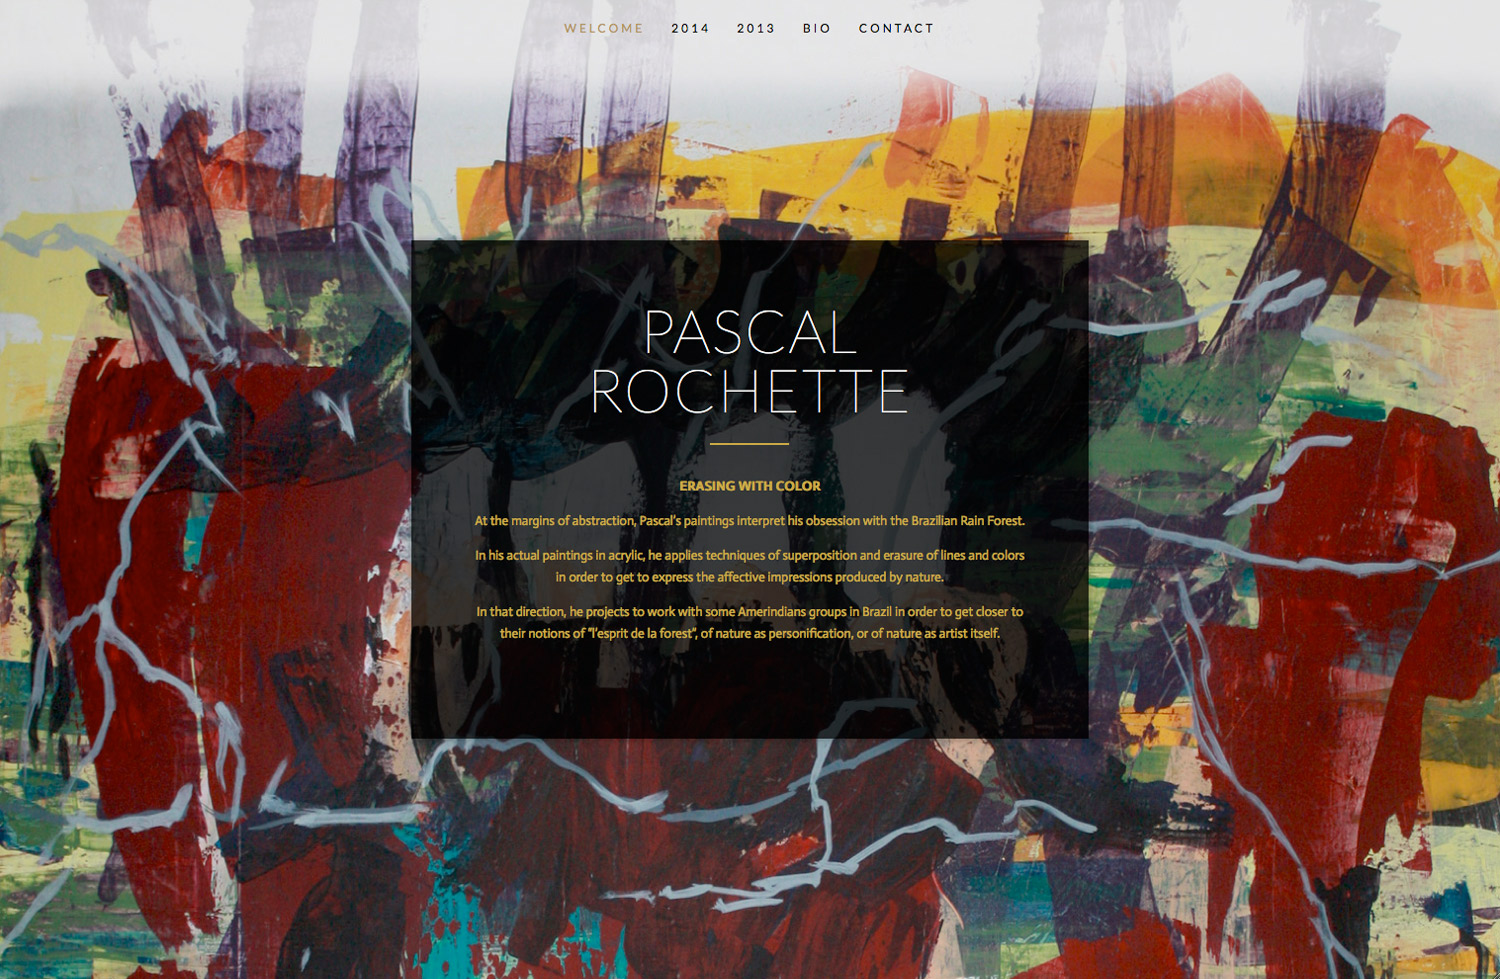 Pascal_Rochette_Welcome_web.jpg